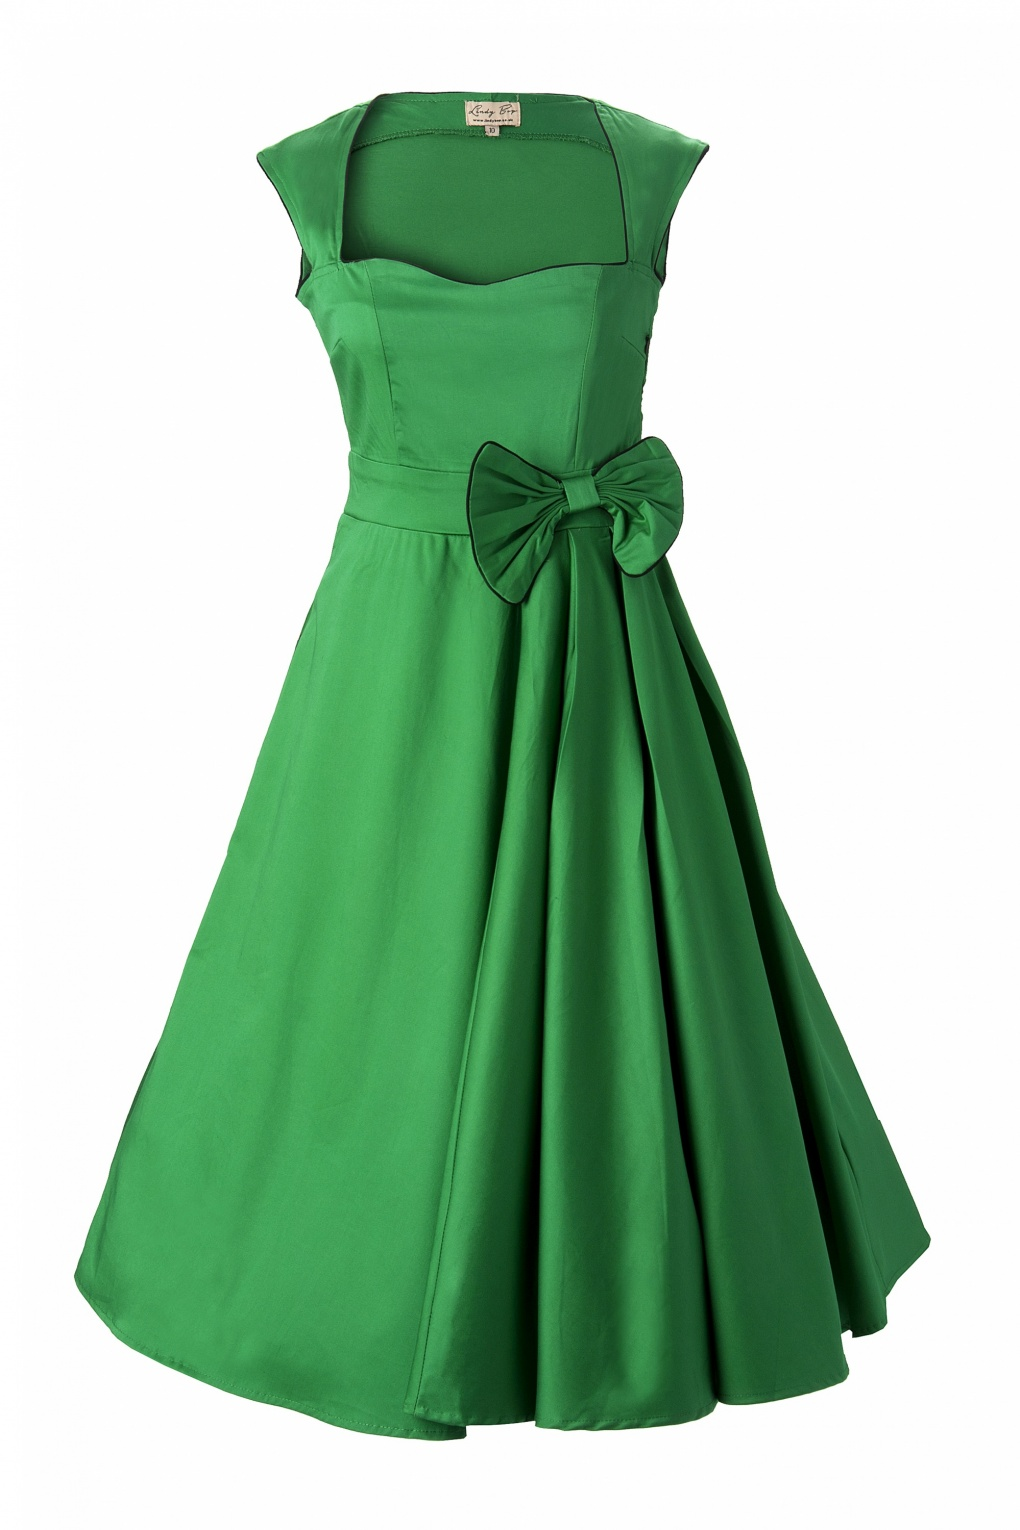 1950 S Grace Green Bow Vintage Style Swing Party Rockabilly